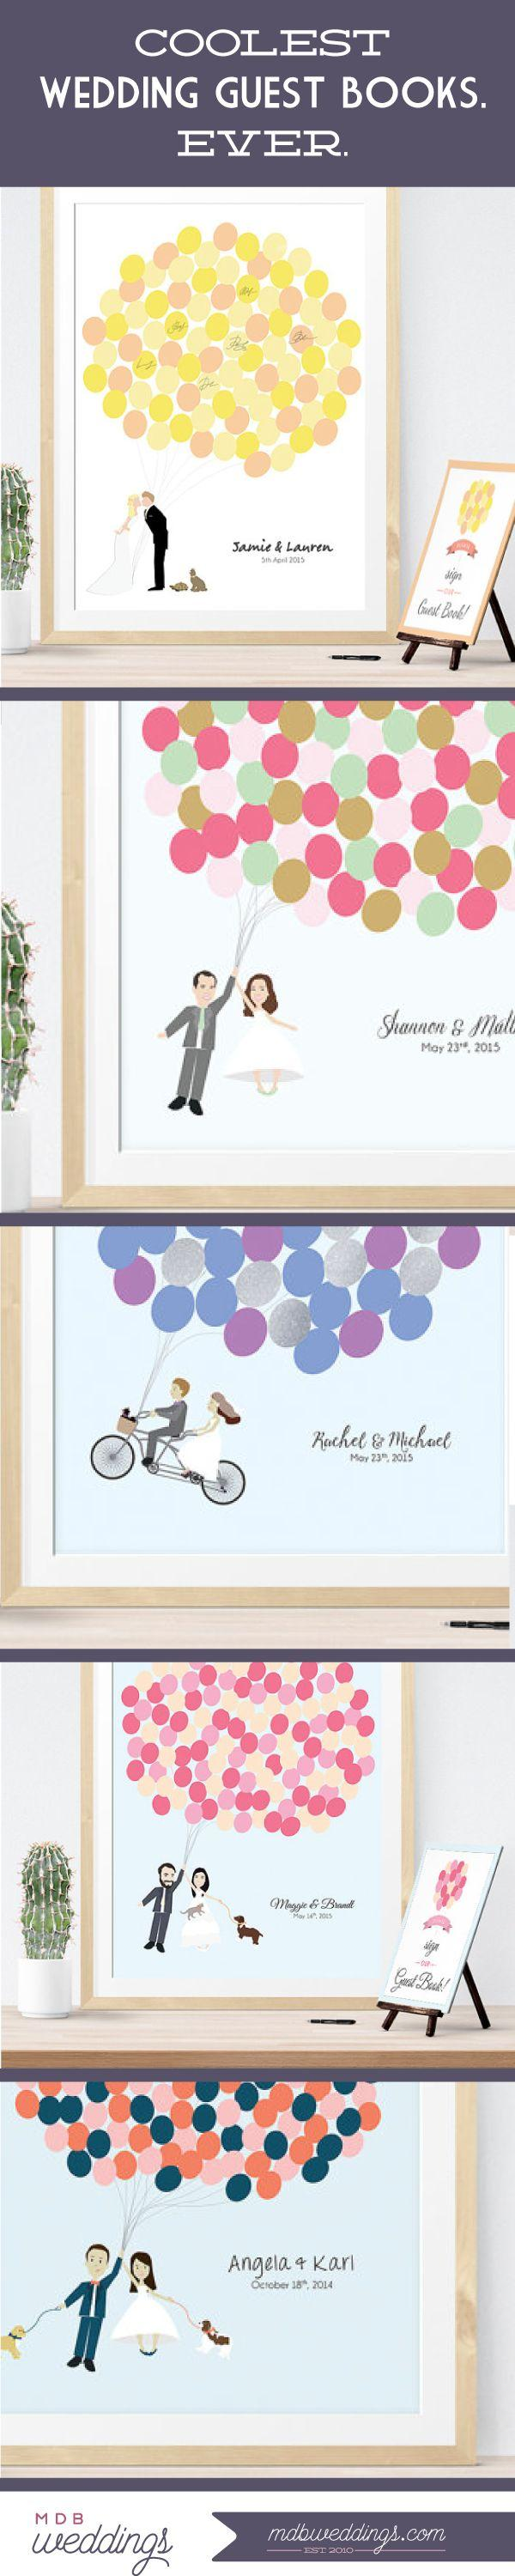 Wedding - Coolest Guest Books EVER!